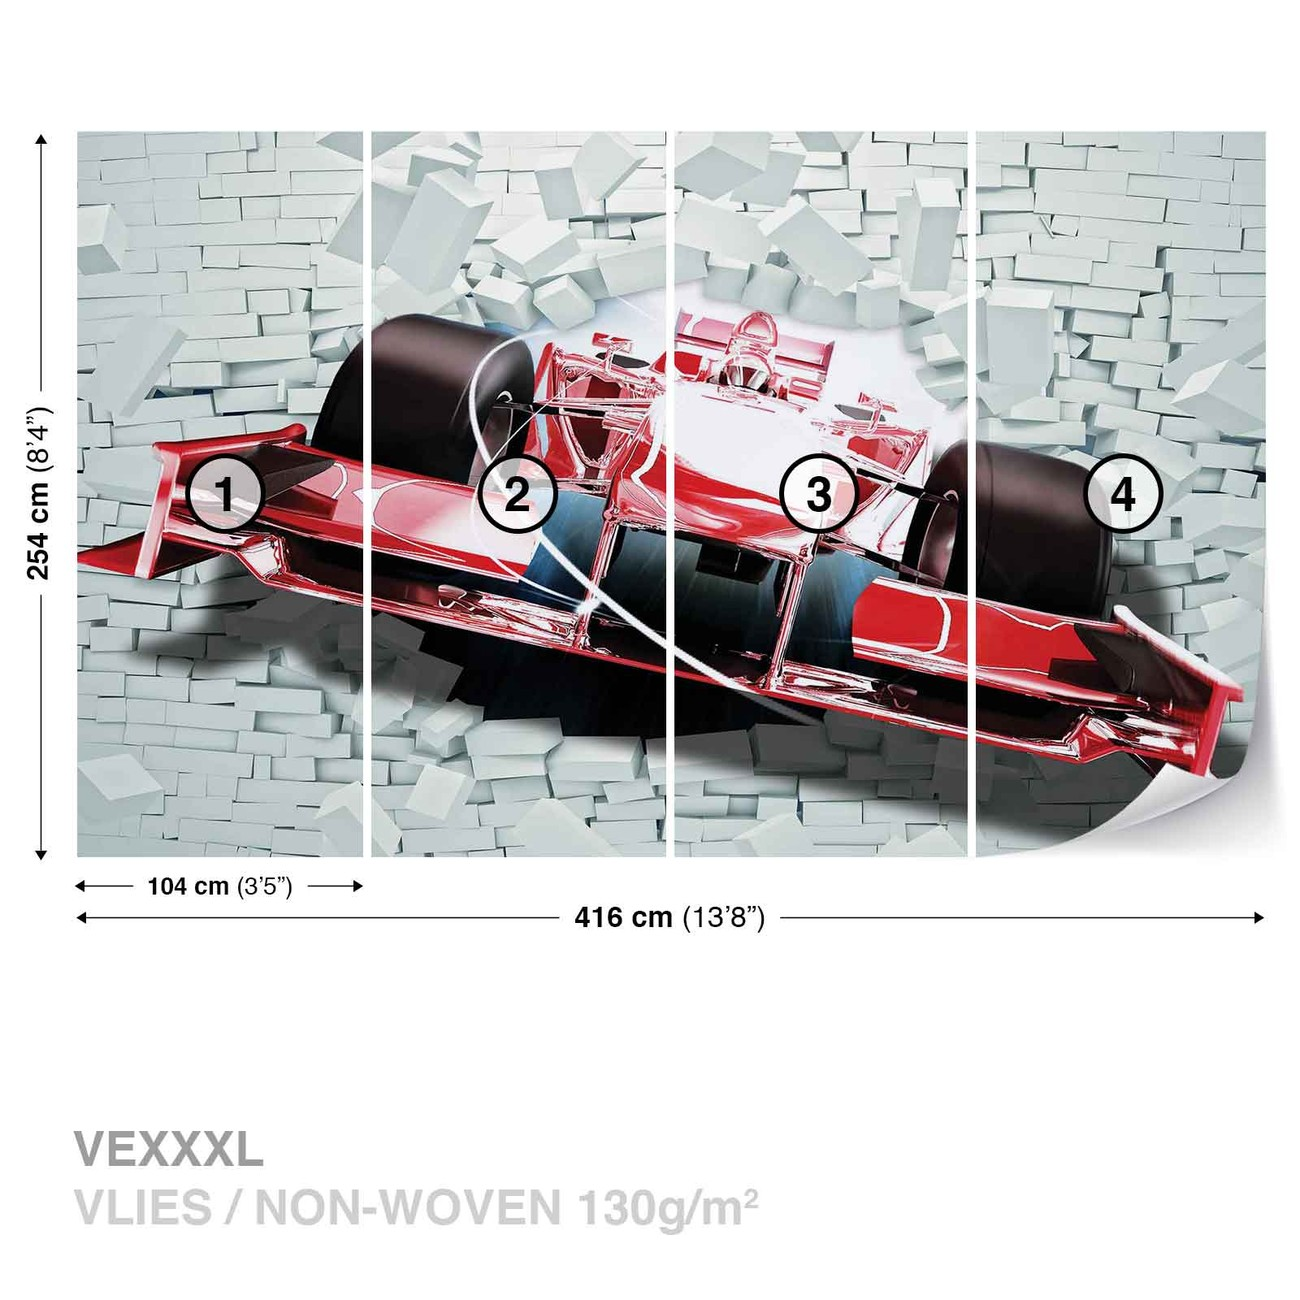 mur de brique formule 1 voiture de course poster mural papier peint acheter le sur. Black Bedroom Furniture Sets. Home Design Ideas